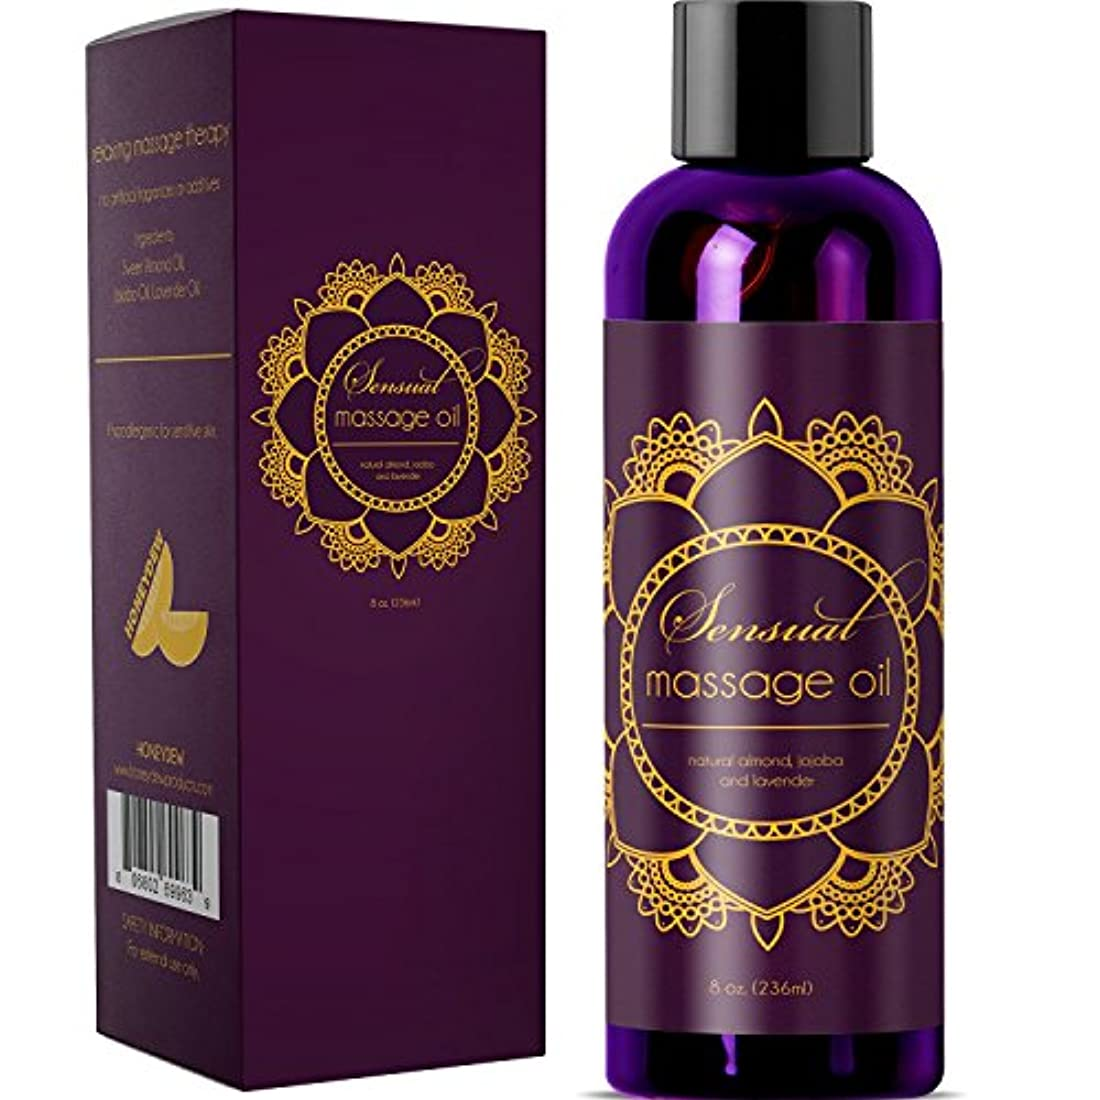 ニッケル熟した流行しているSensual Massage Oil w/ Pure Lavender Oil - Relaxing Almond & Jojoba Oil - Women & Men - 100% Natural Hypoallergenic...